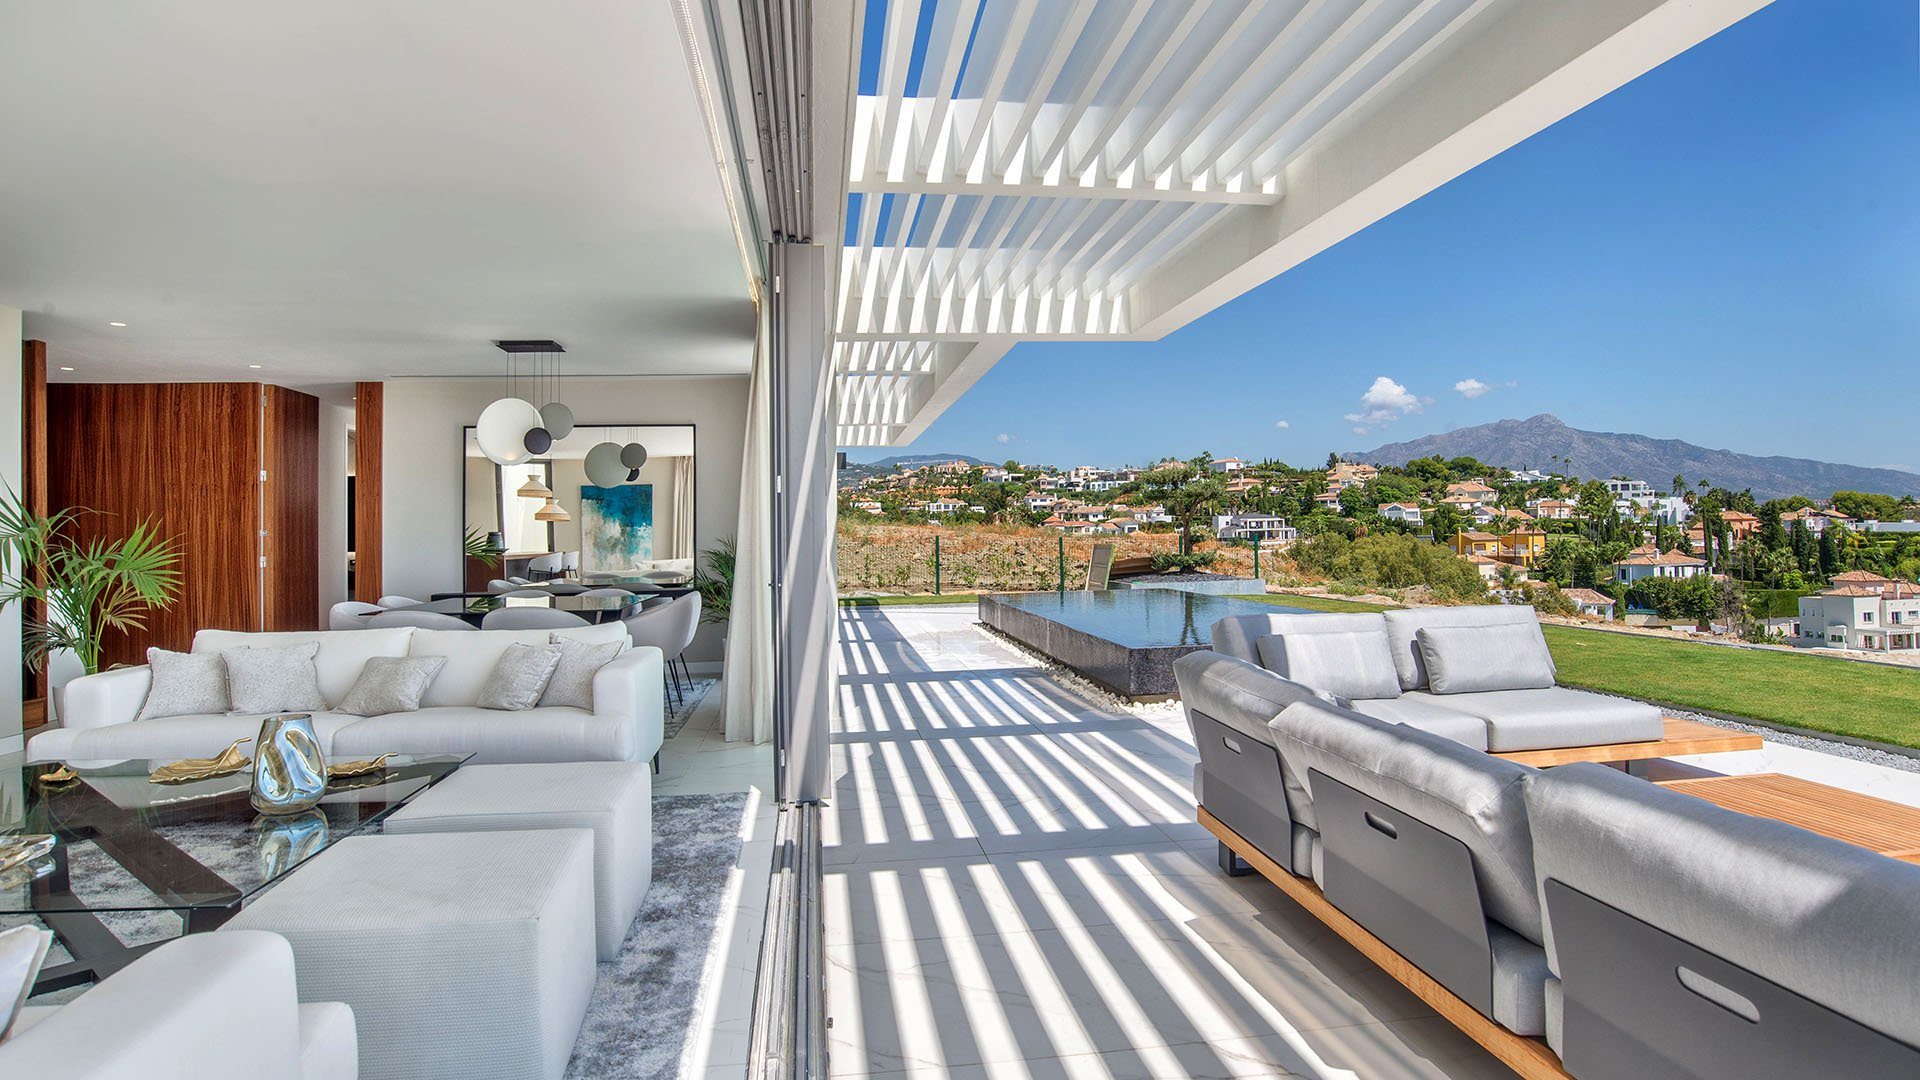 Mirador del Paraíso Infinity: Luxury duplex penthouses on the New Golden Mile